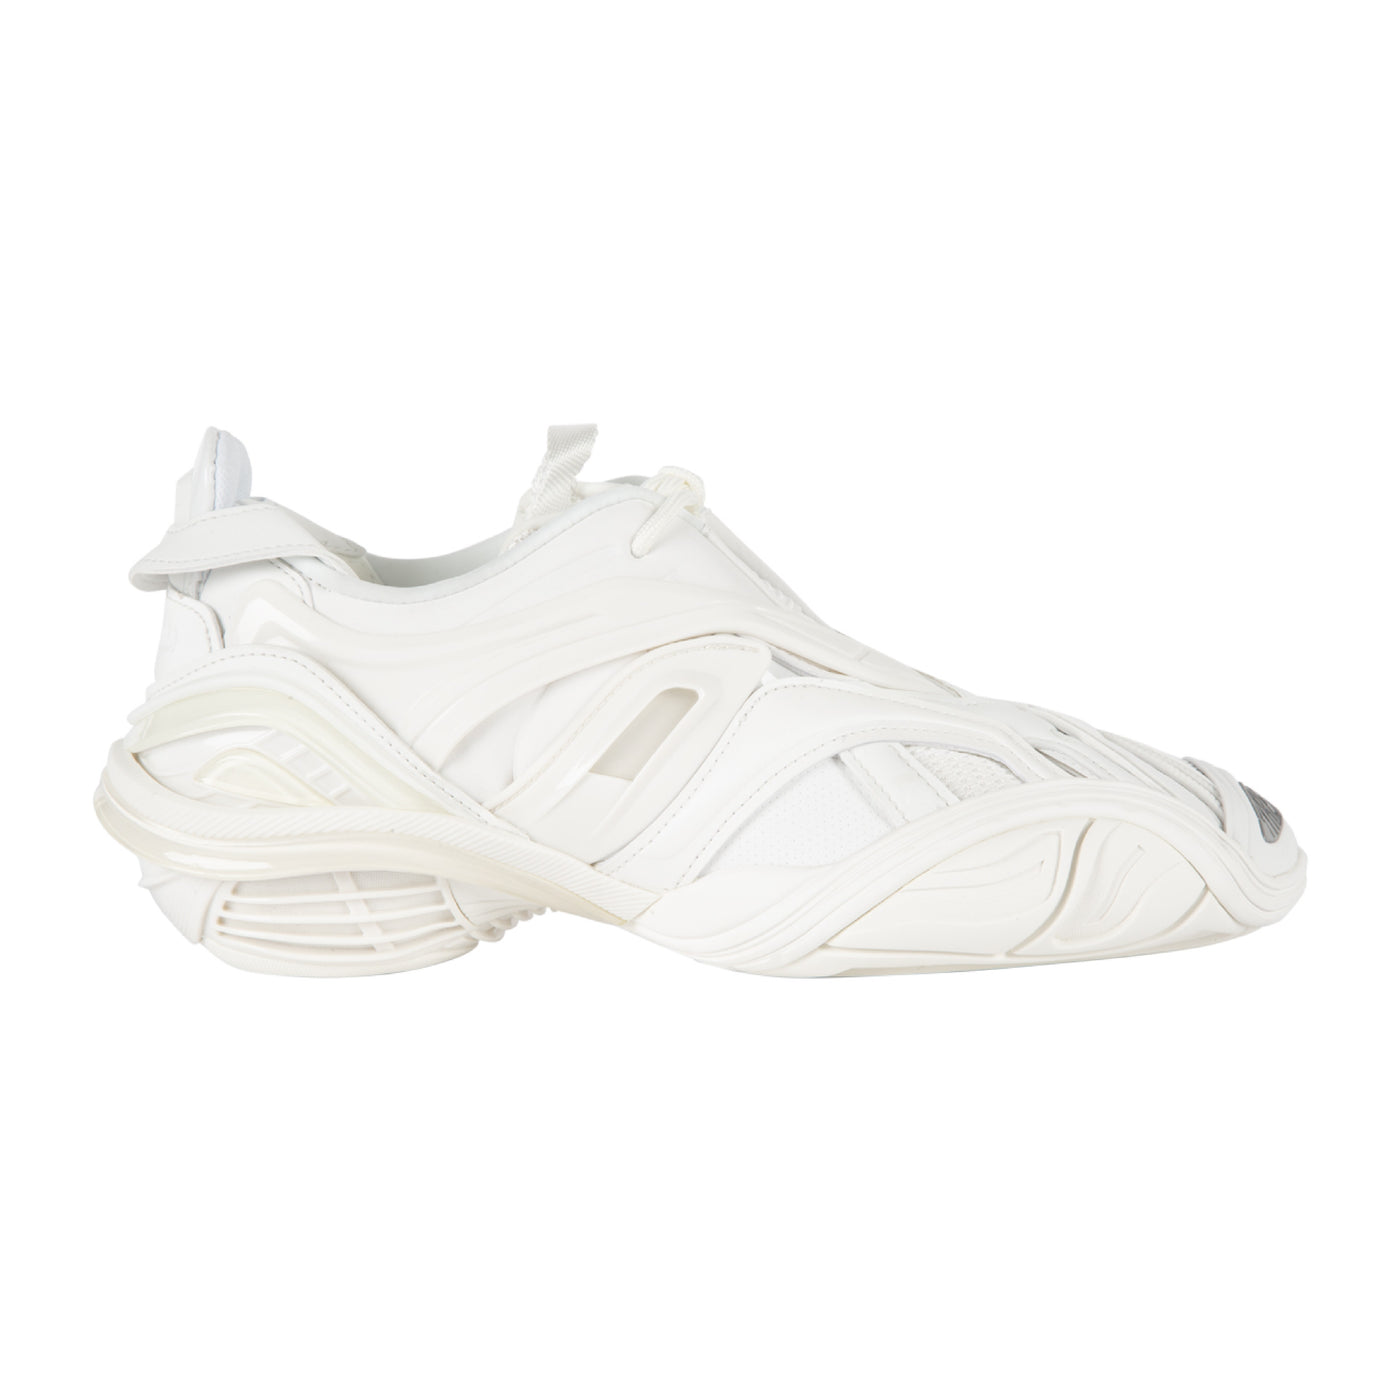 Load image into Gallery viewer, BALENCIAGA TYREX SNEAKER WHITE